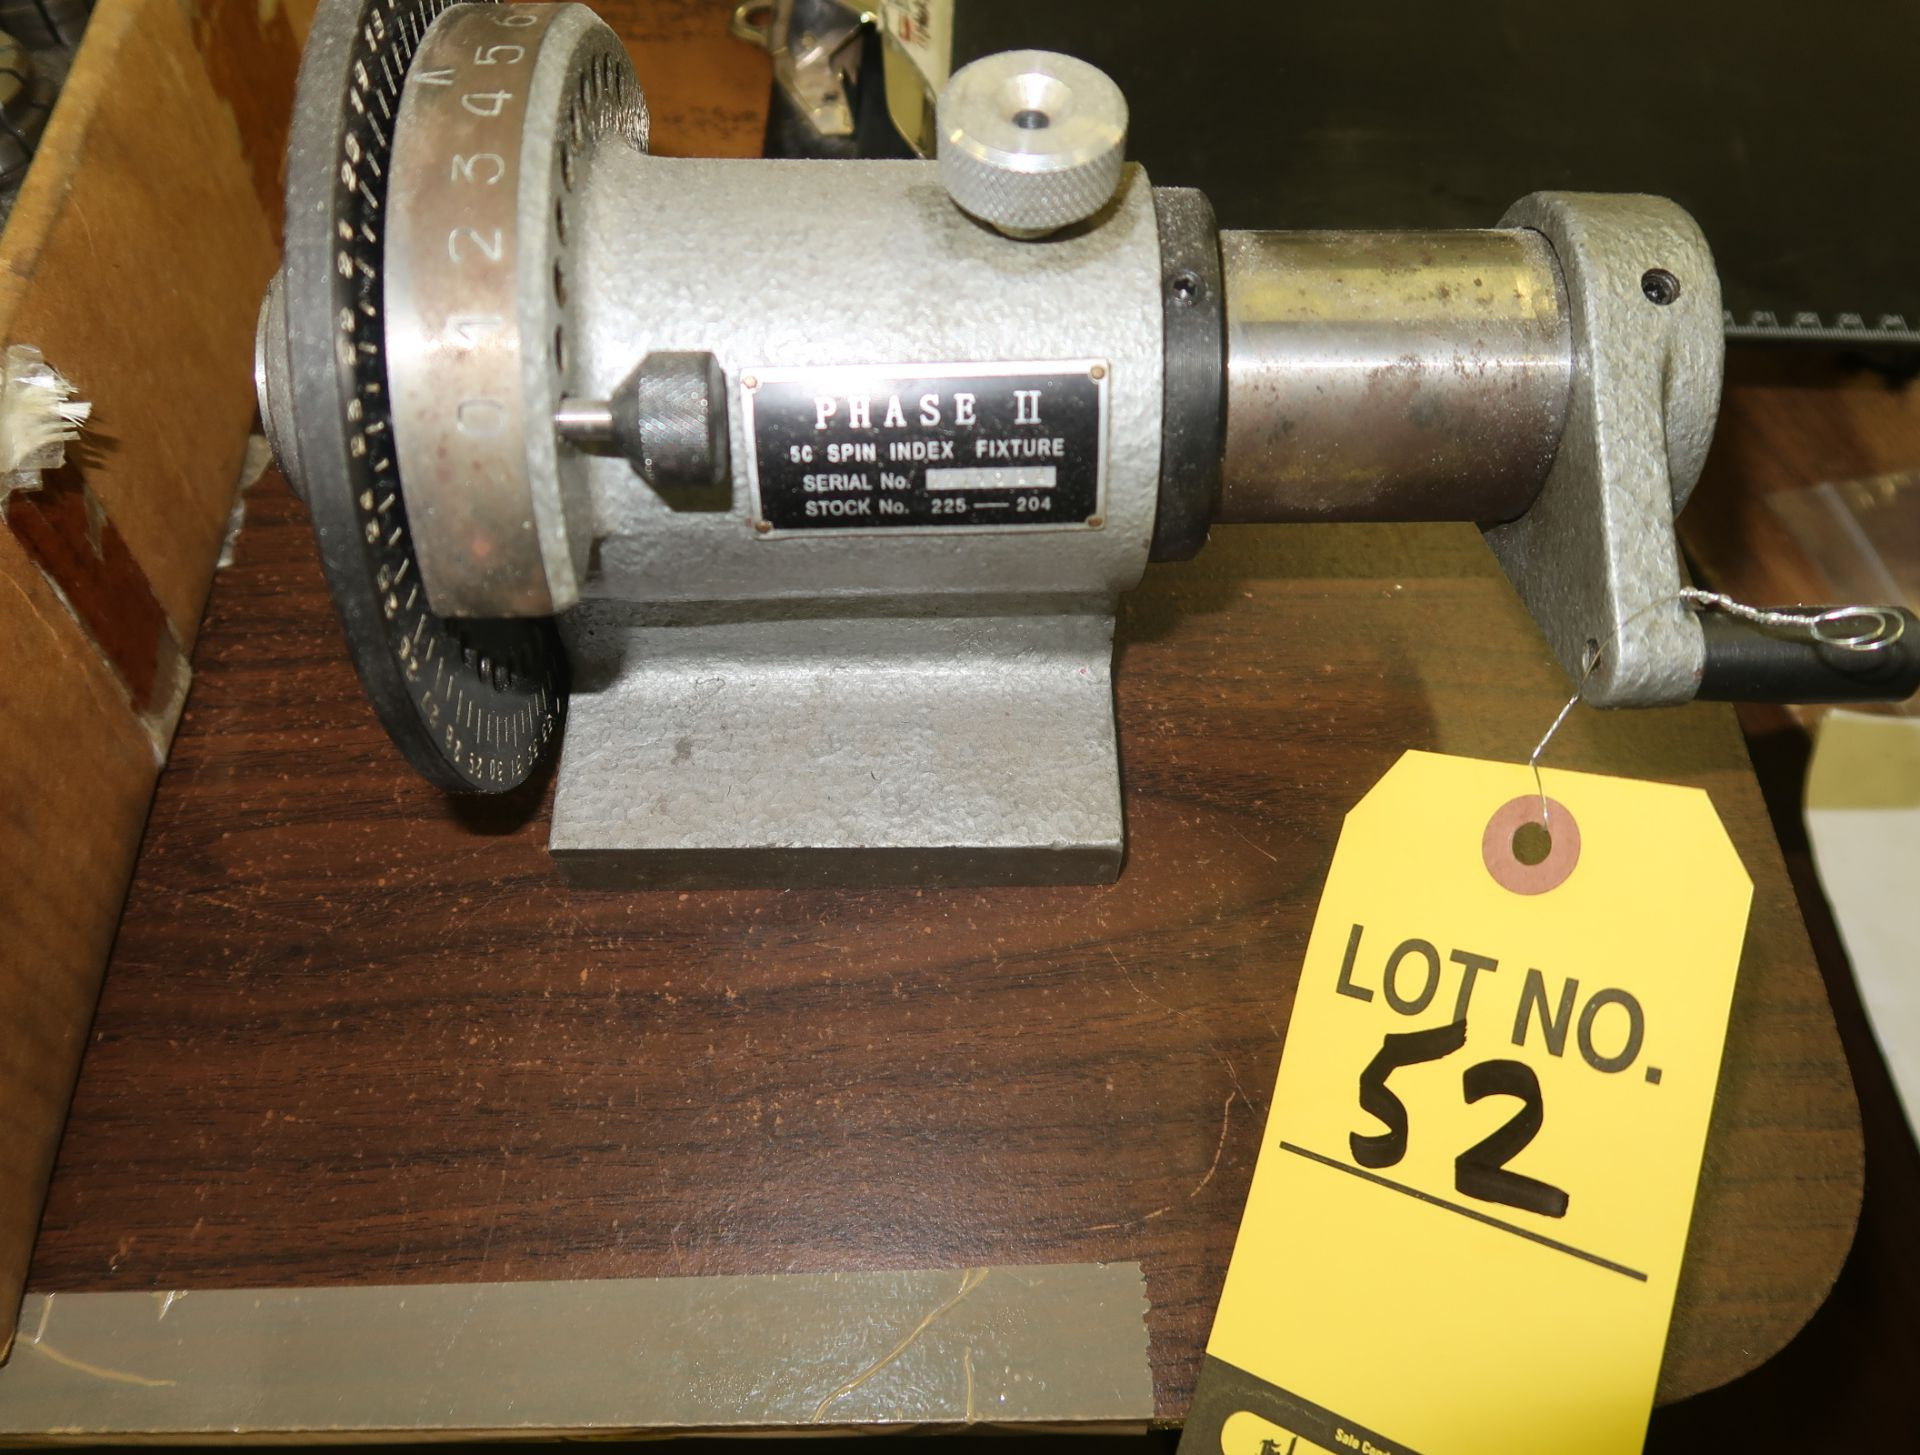 Lot 52 - PHASE II 5C SPIN INDEX FIXTURE